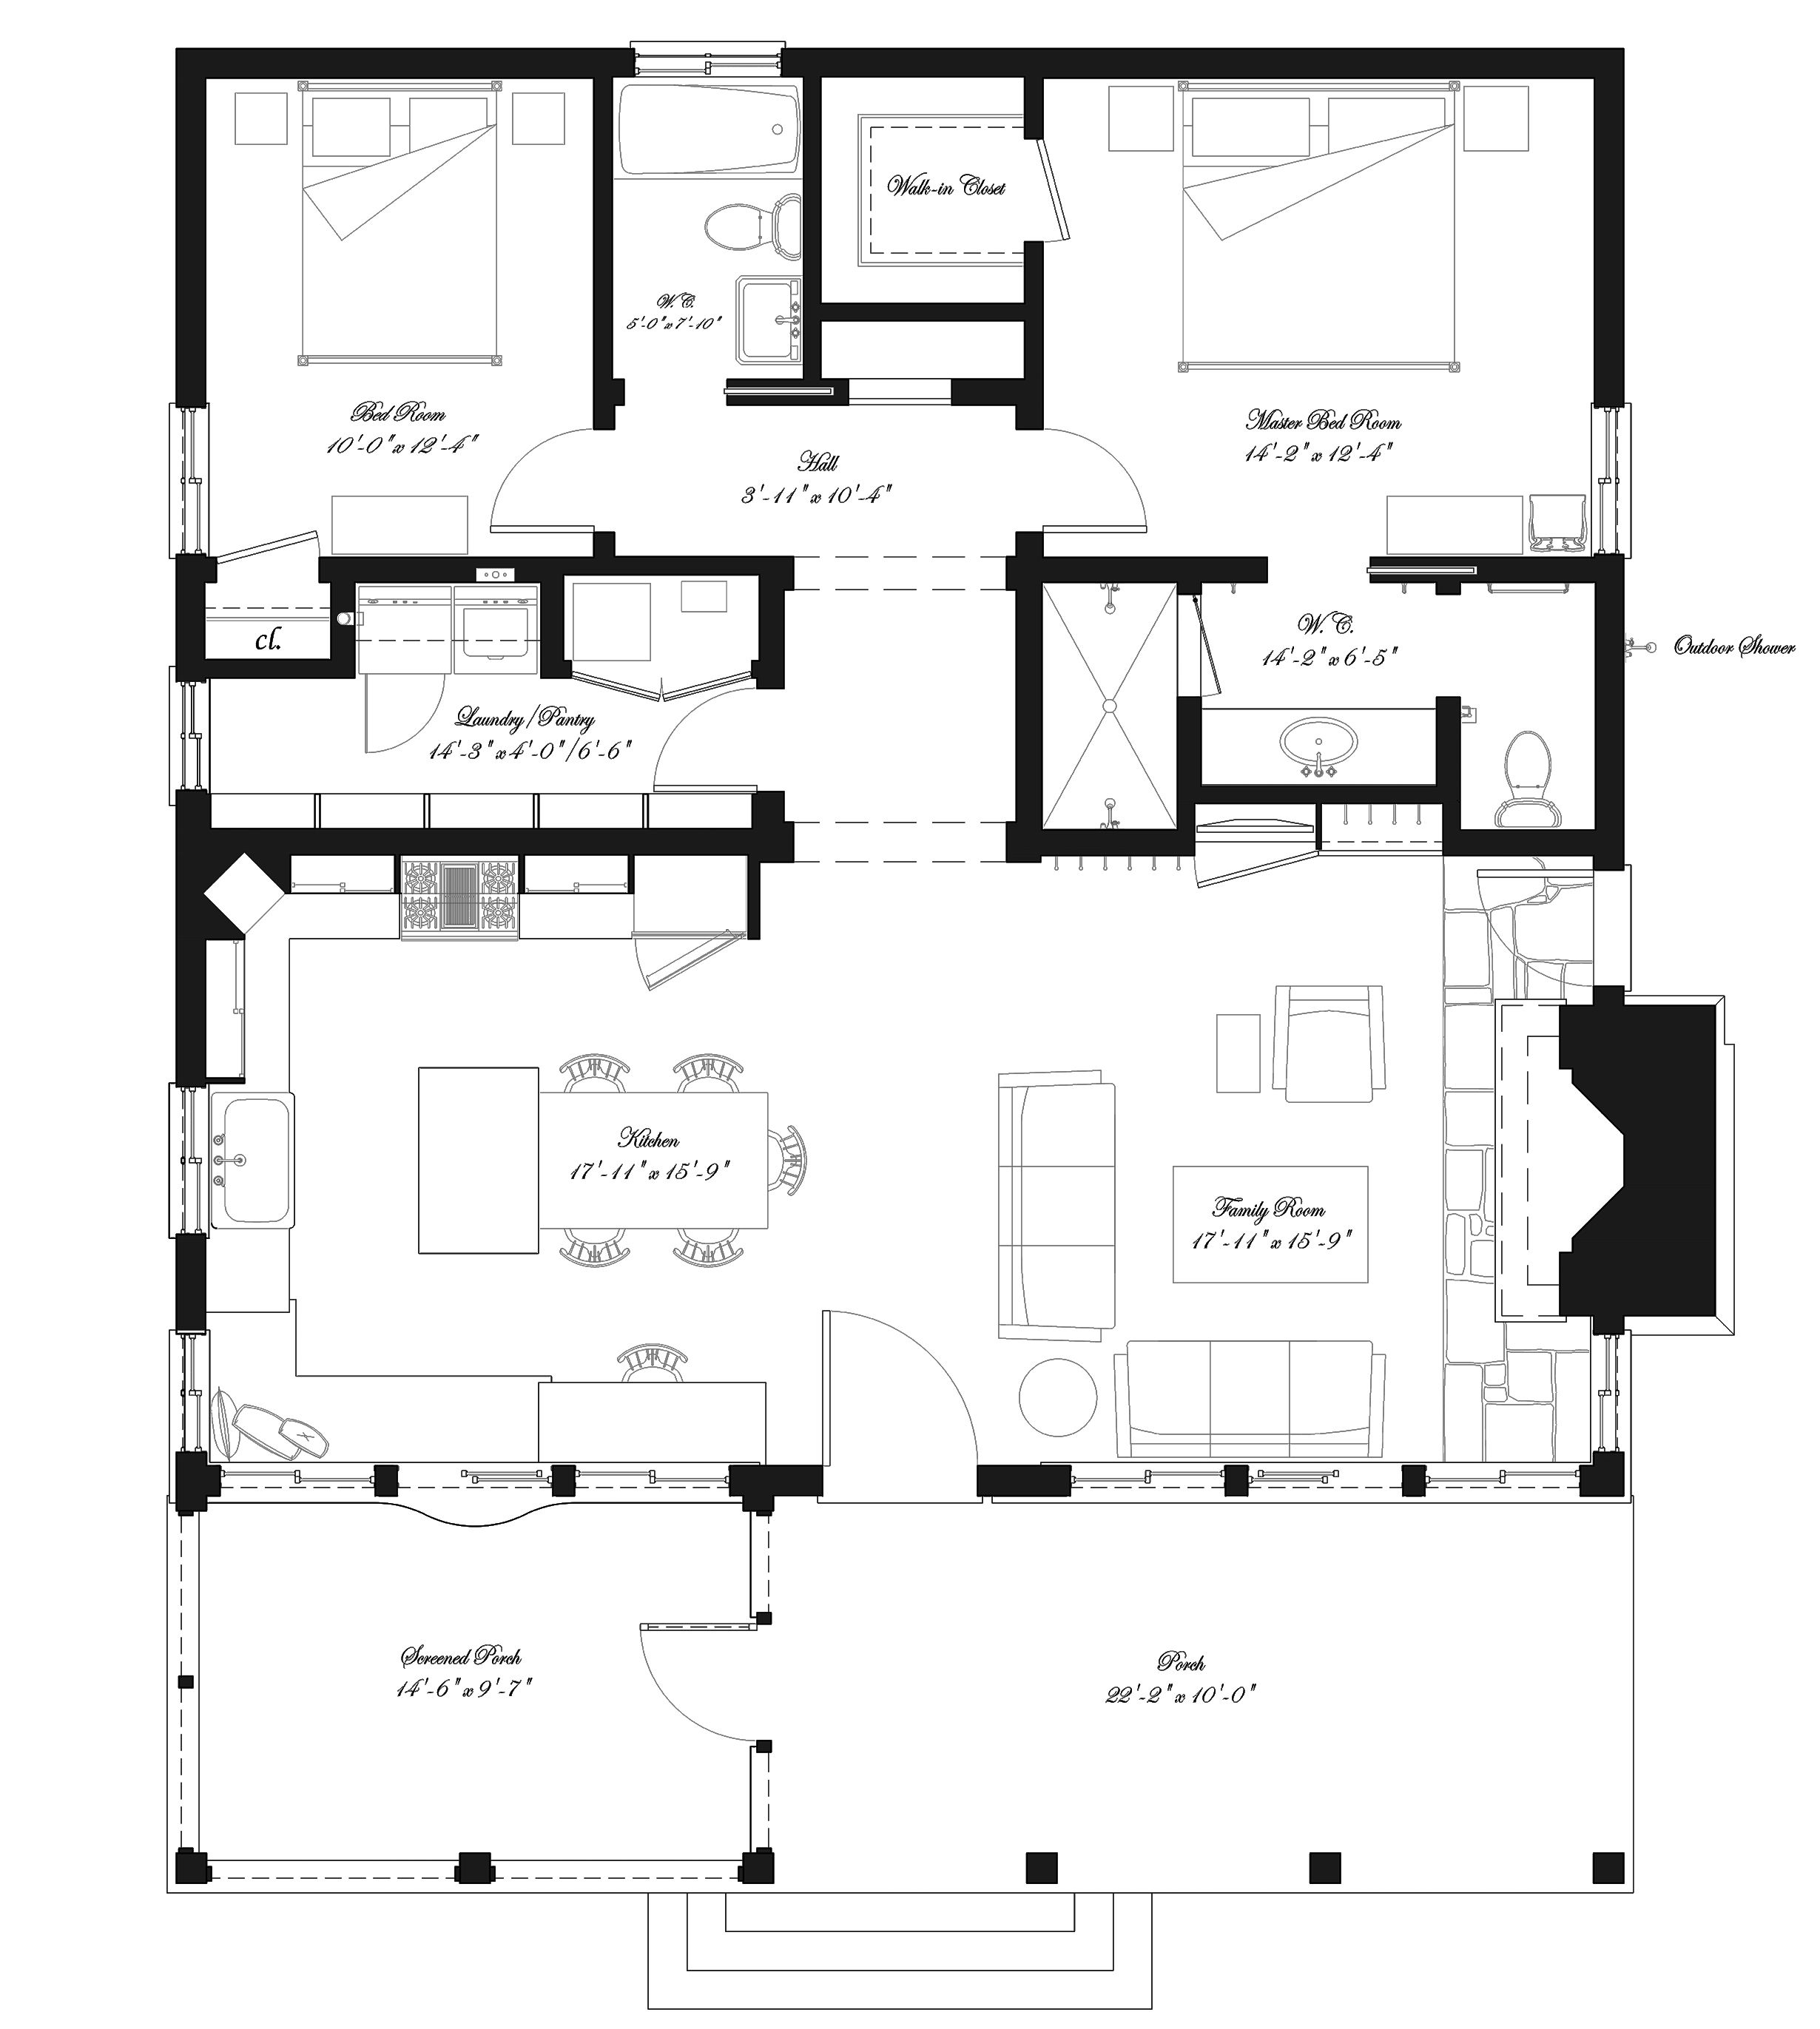 Simple Floor Plans nice simple floor plan replace laundry for stairs and mudroom area for boots Southern Style House Plan 2 Beds 2 Baths 1394 Sqft Plan 492 Simple Floor